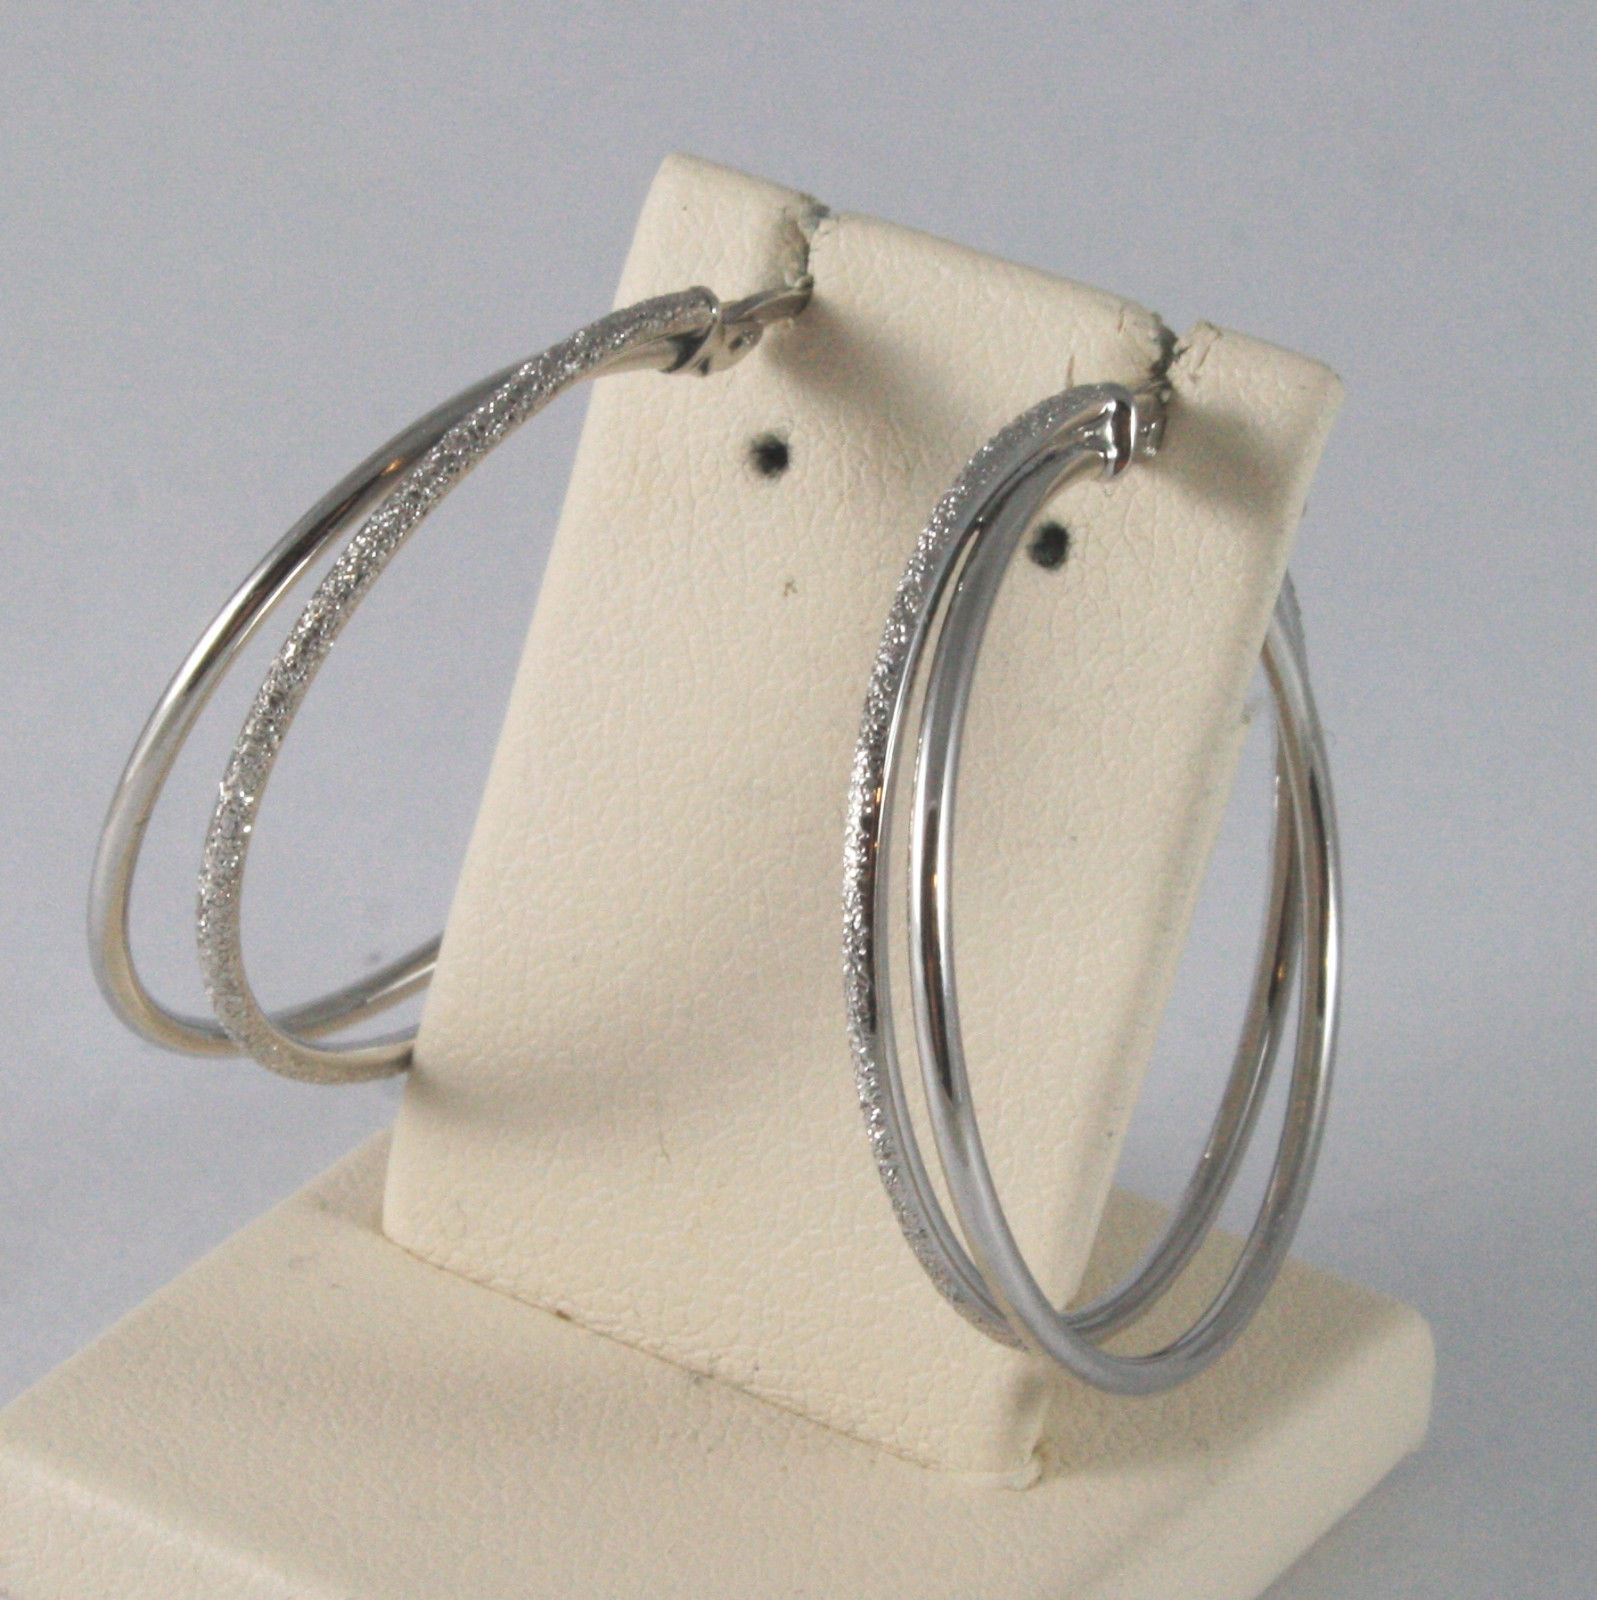 SOLID 18K WHITE GOLD DOUBLE CIRCLE EARRINGS SHINY AND SATIN MADE IN ITALY 18K